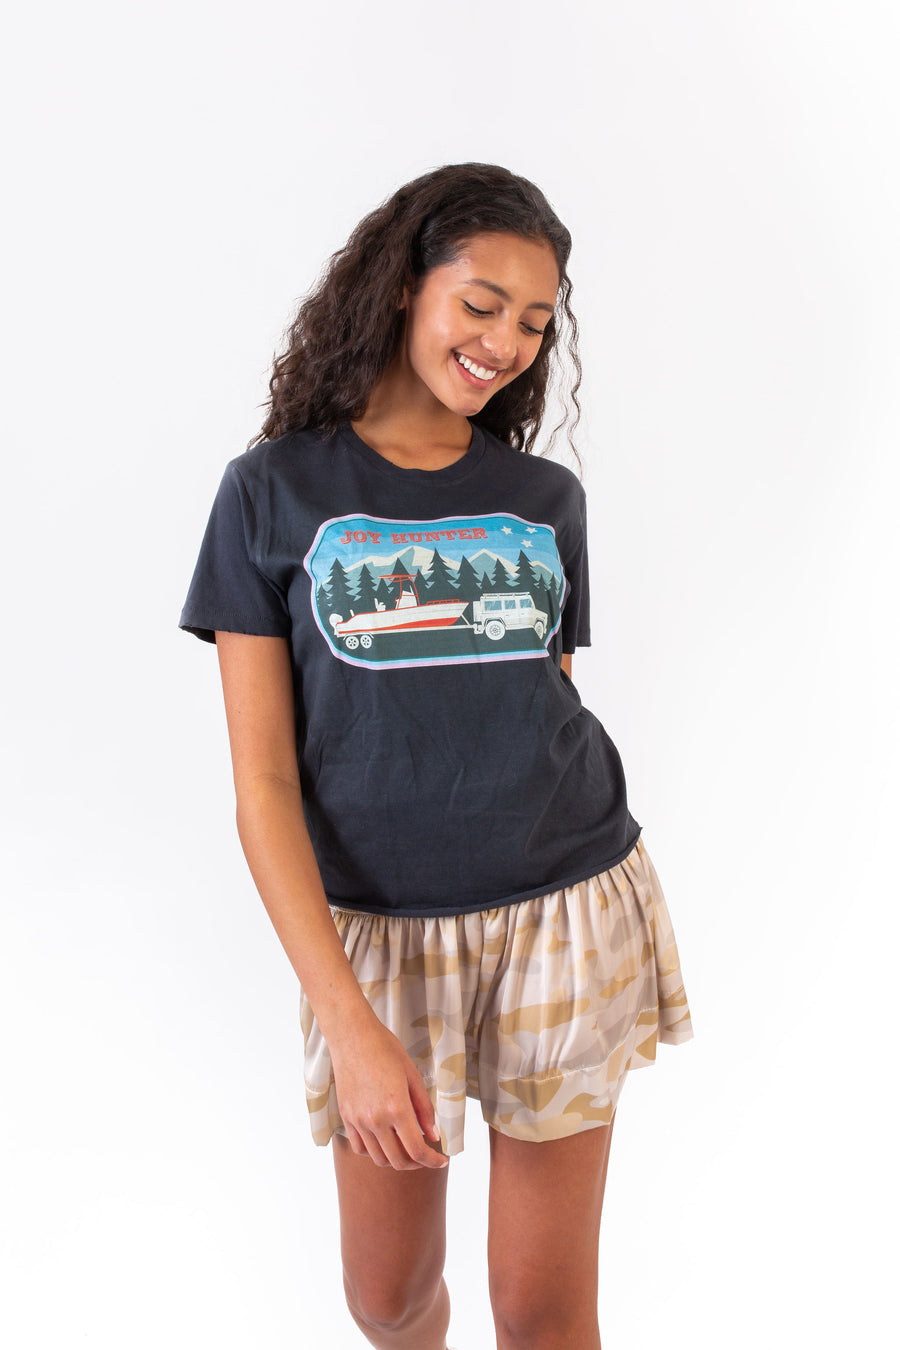 DREW T-SHIRT VINTAGE BLACK JOY HUNTER BOAT *LIMITED*EDITION*